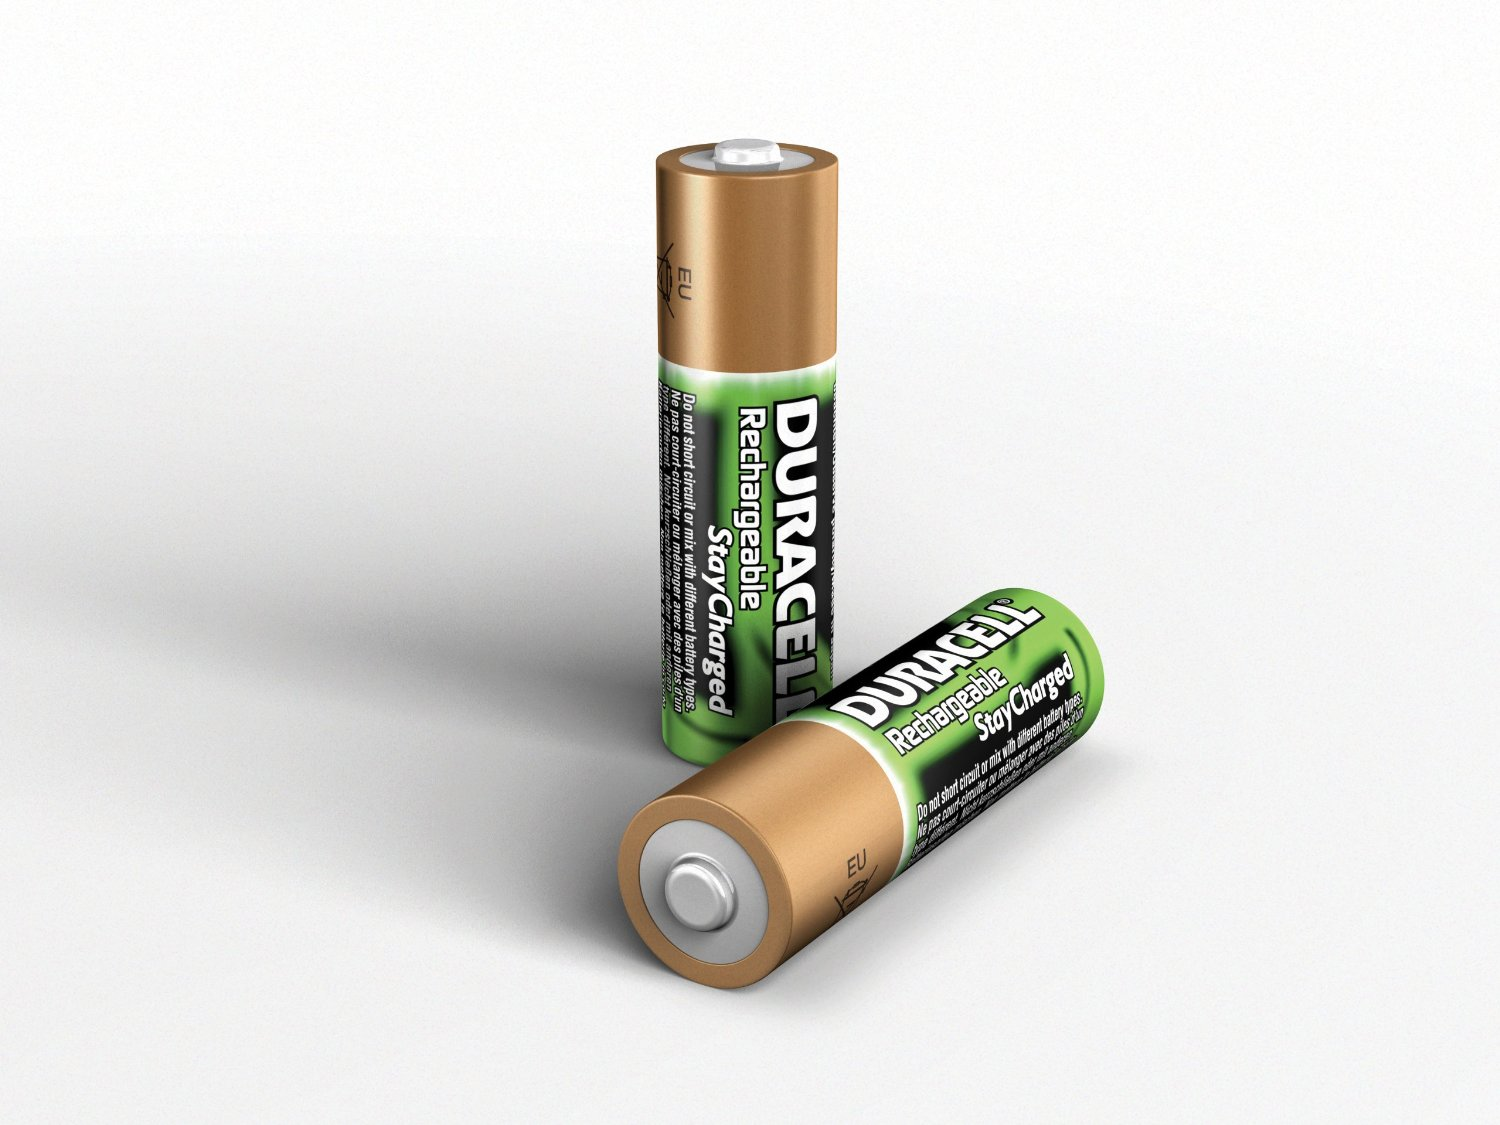 Duracell Stay Charged, le batterie ricaricabili ideali per mouse e tastiere